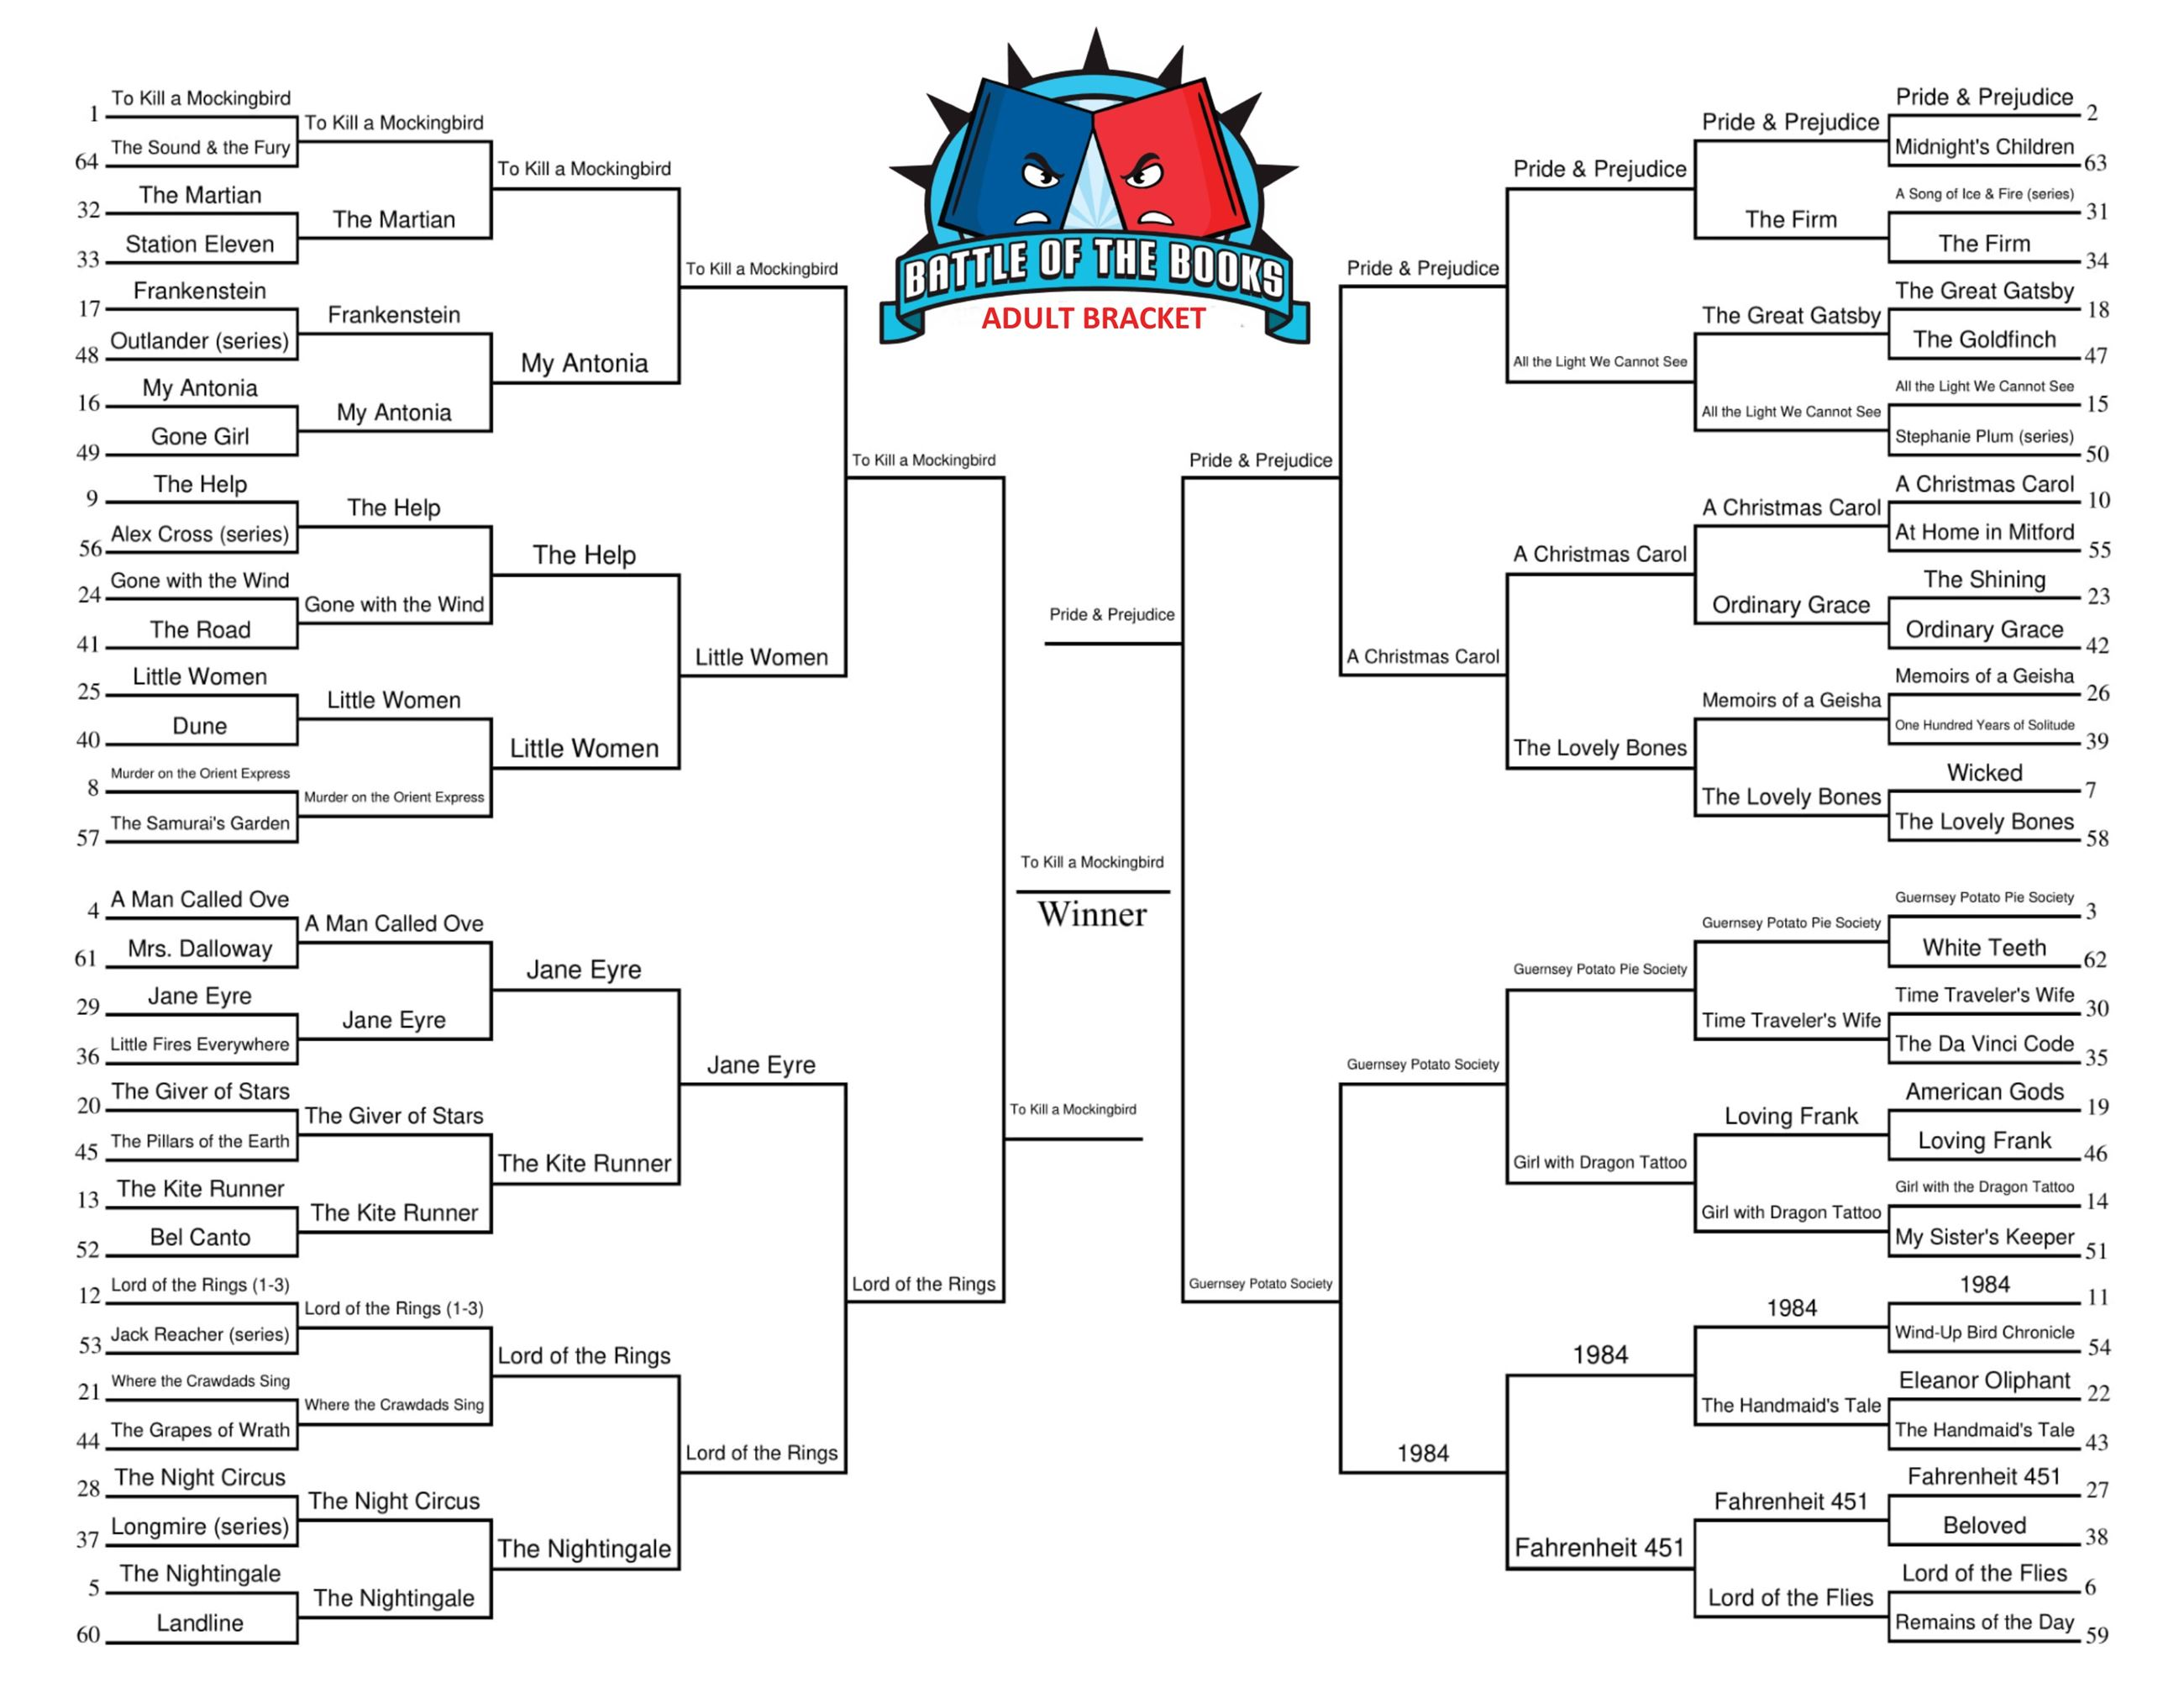 Battle of the Books Adult Bracket 64